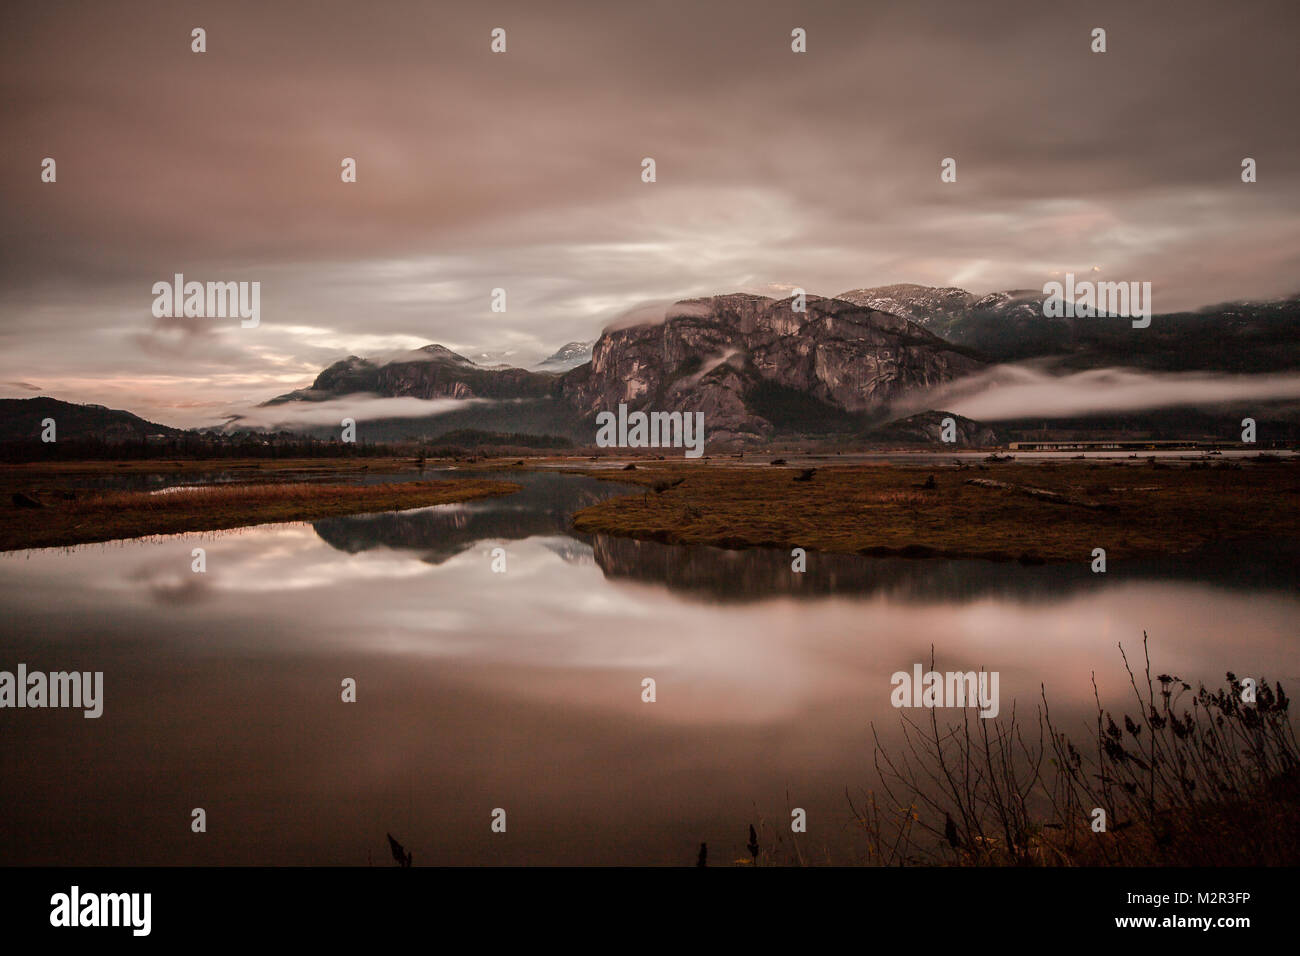 The Squamish Estuary at sunrise during a king tide. The Stawamus Chief is in the background with a colourful and - Stock Image